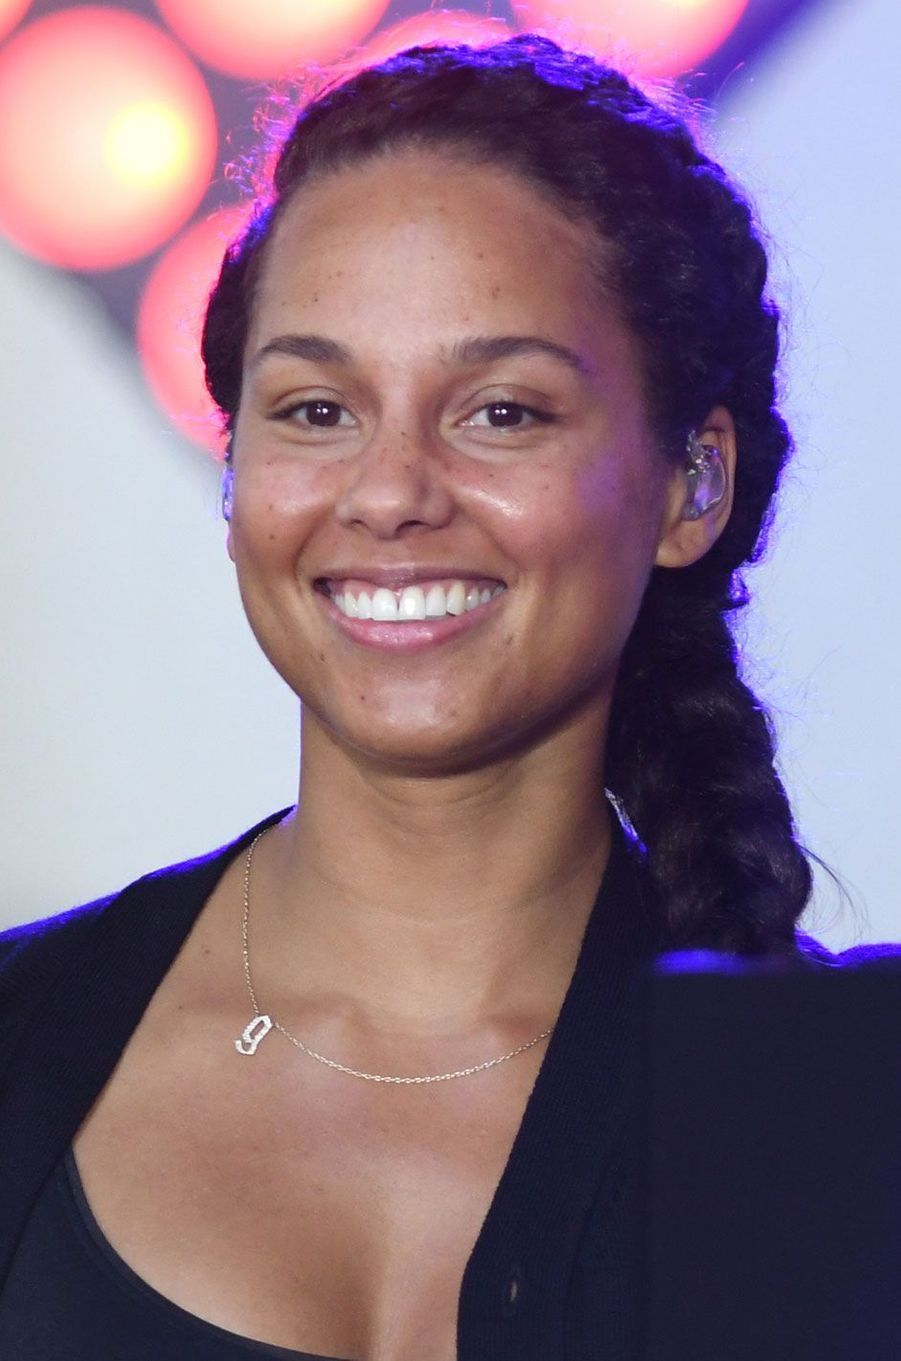 Alicia Keys donne un concert sans maquillage à New York en septembre 2016.